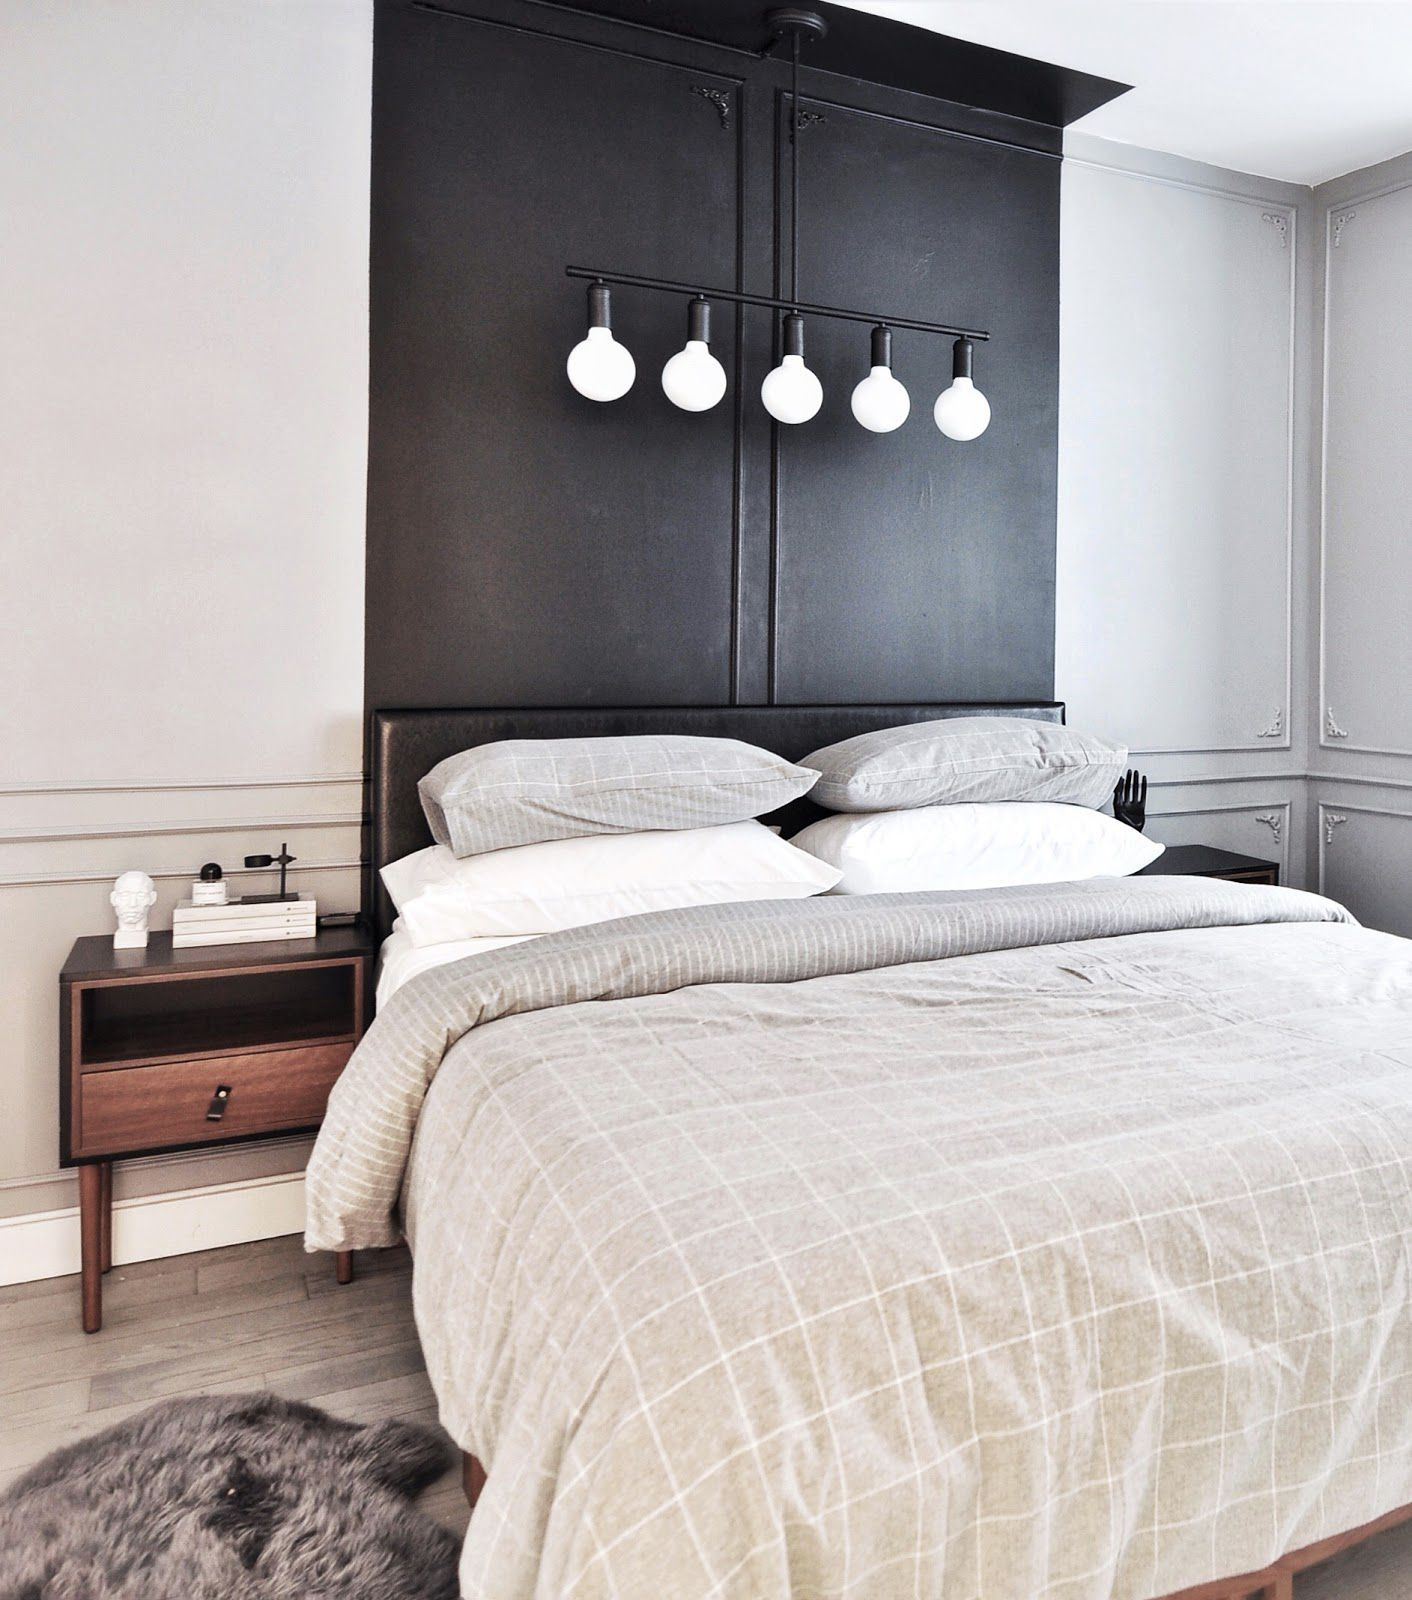 50 Gorgeous Bedroom Ideas to Help You Design the Space of Your Dreams